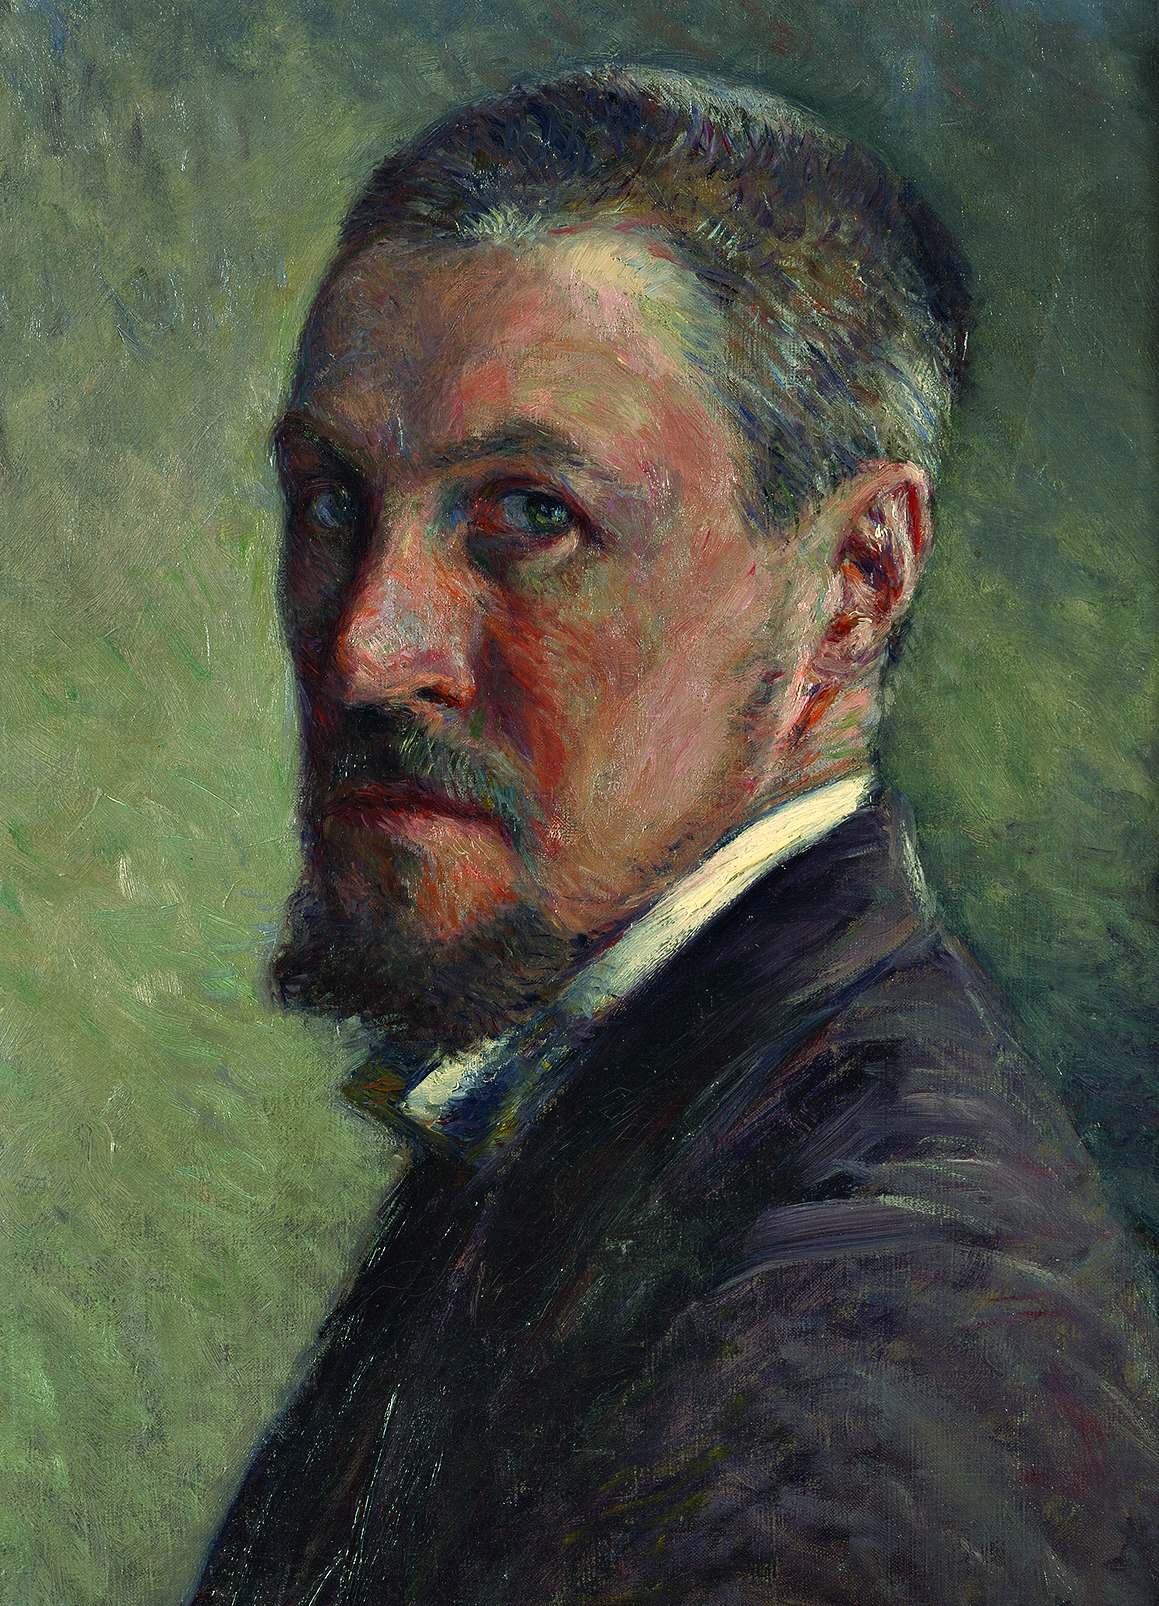 Gustave Caillebotte: The Greatest Impressionist You've